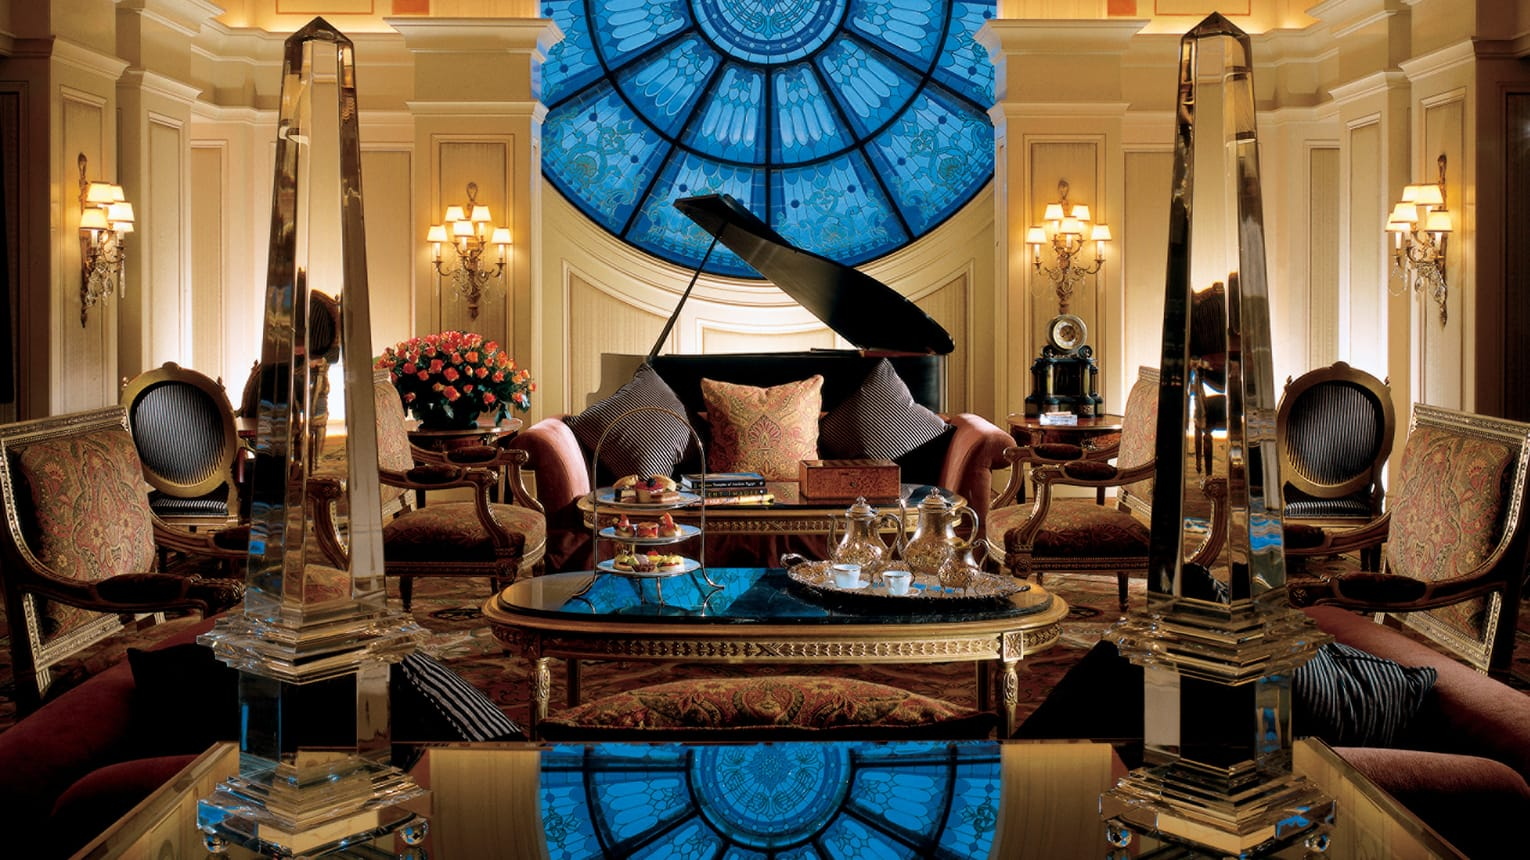 Four Seasons Hotel Cairo at the First Residence Empfangsbereich